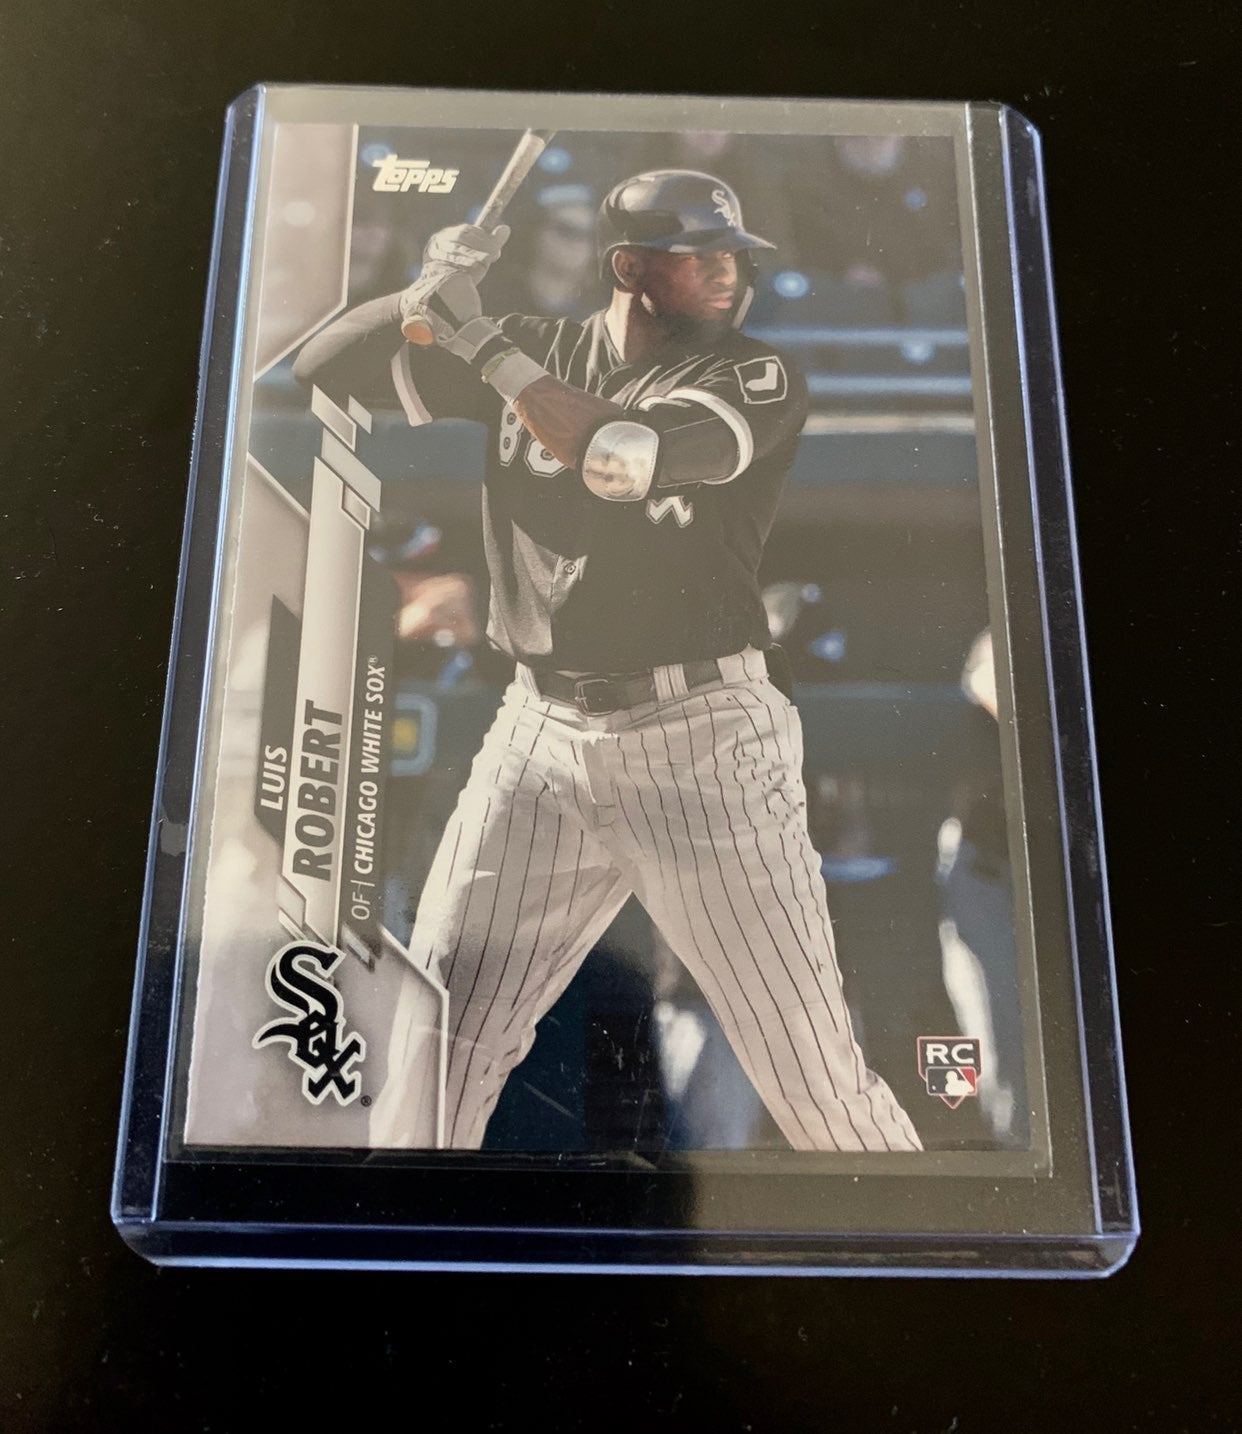 Topps baseball card - Luis Robert